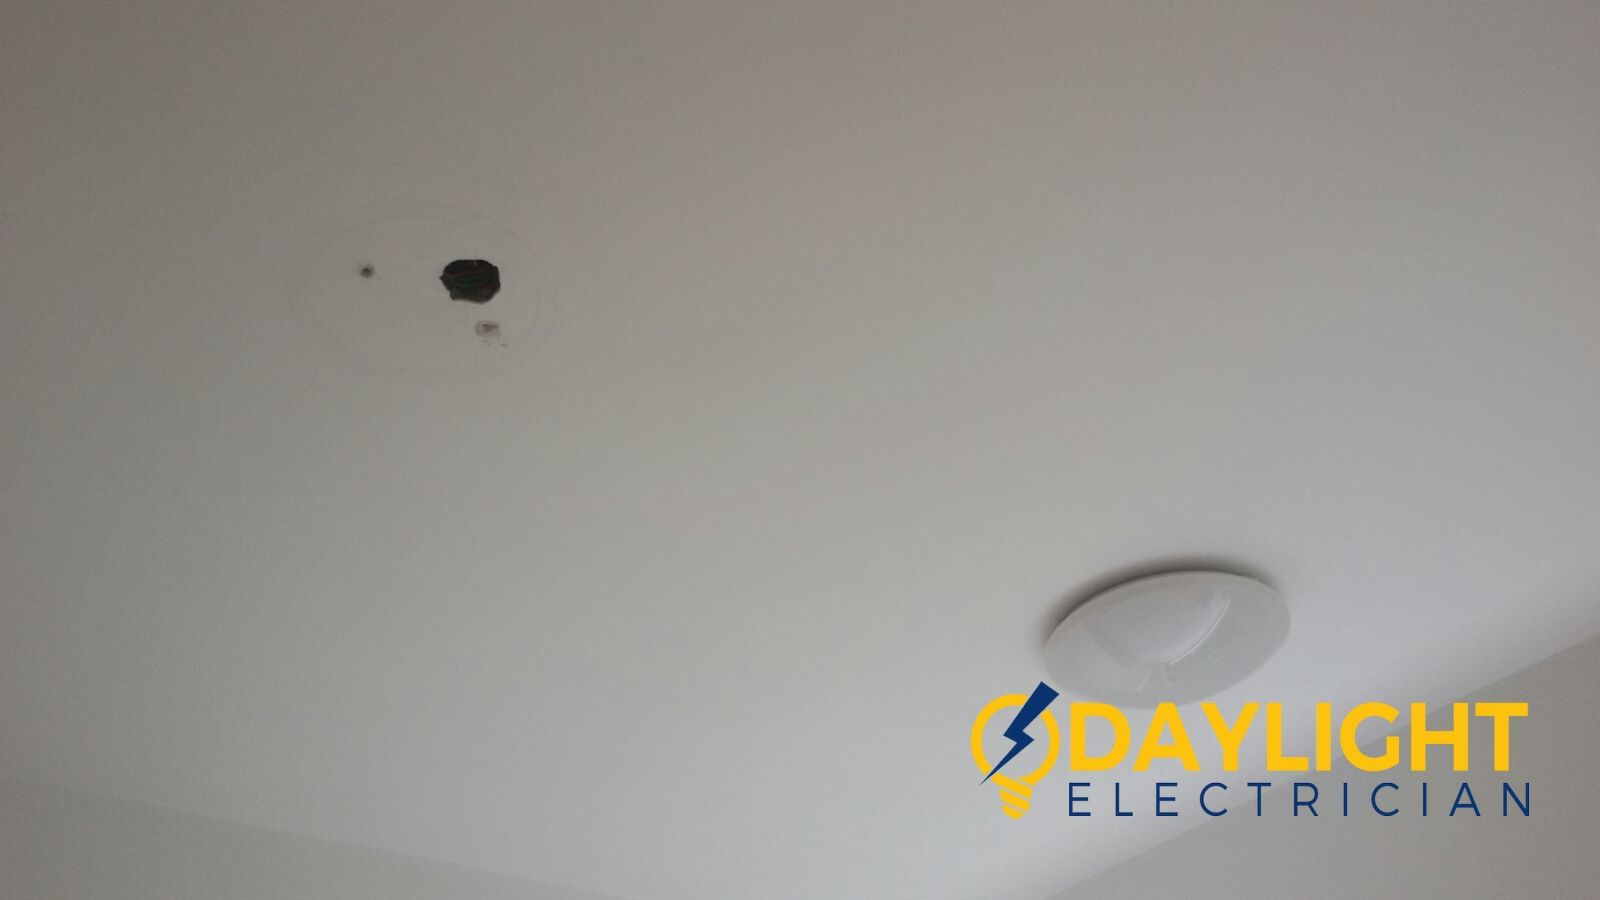 Pin by Daylight Electrician Singapore on Installation of lightings ...